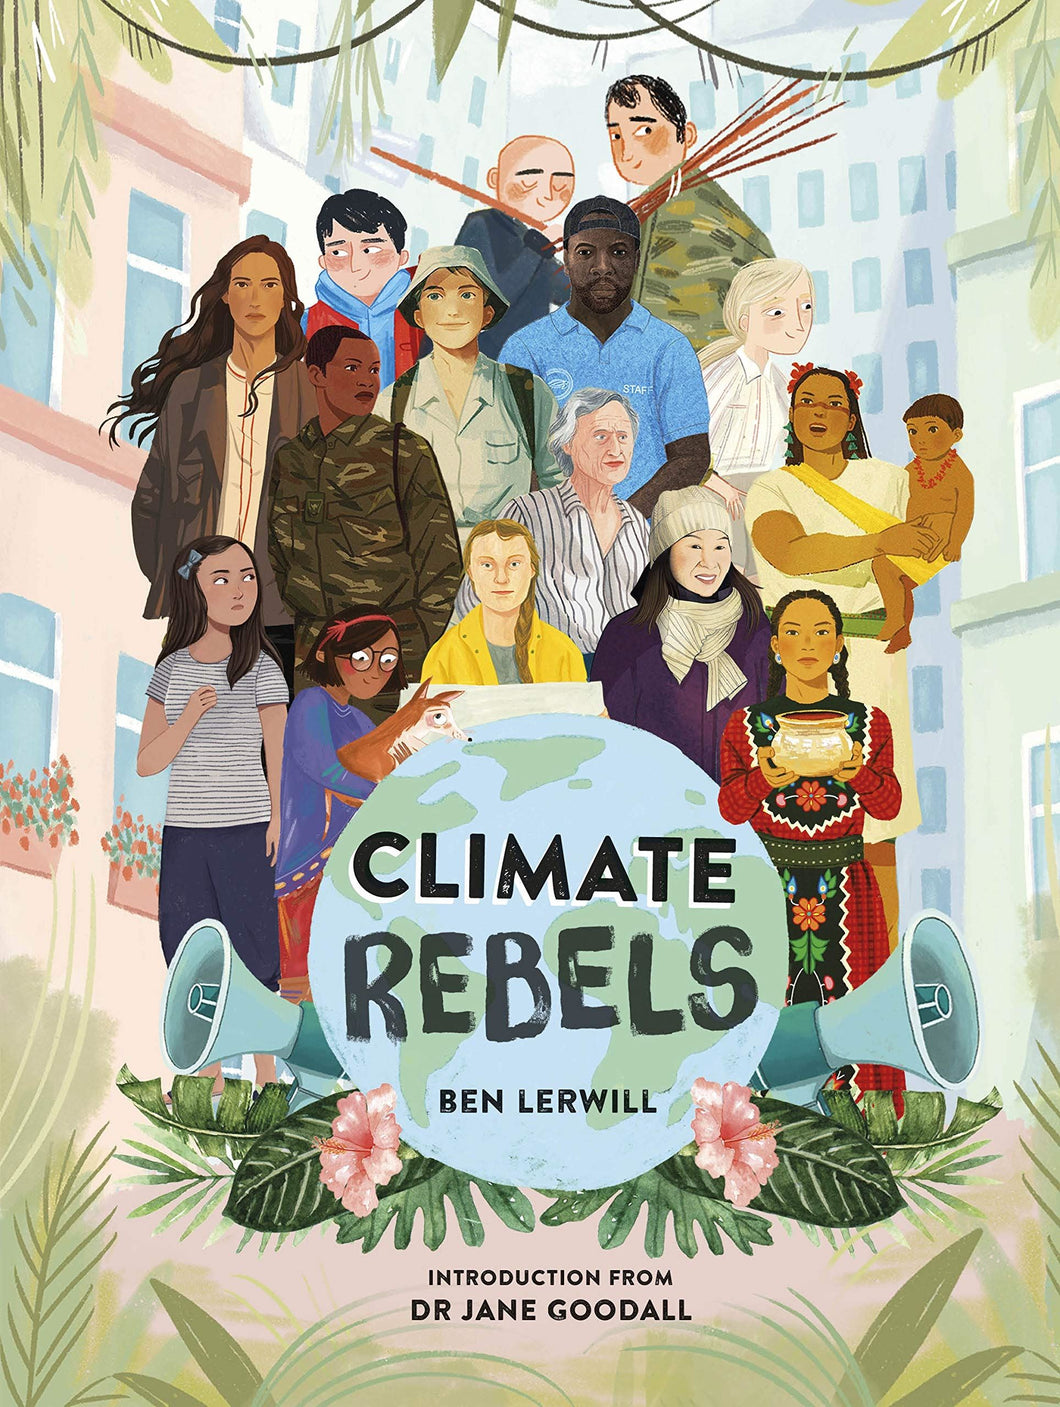 Climate rebels book